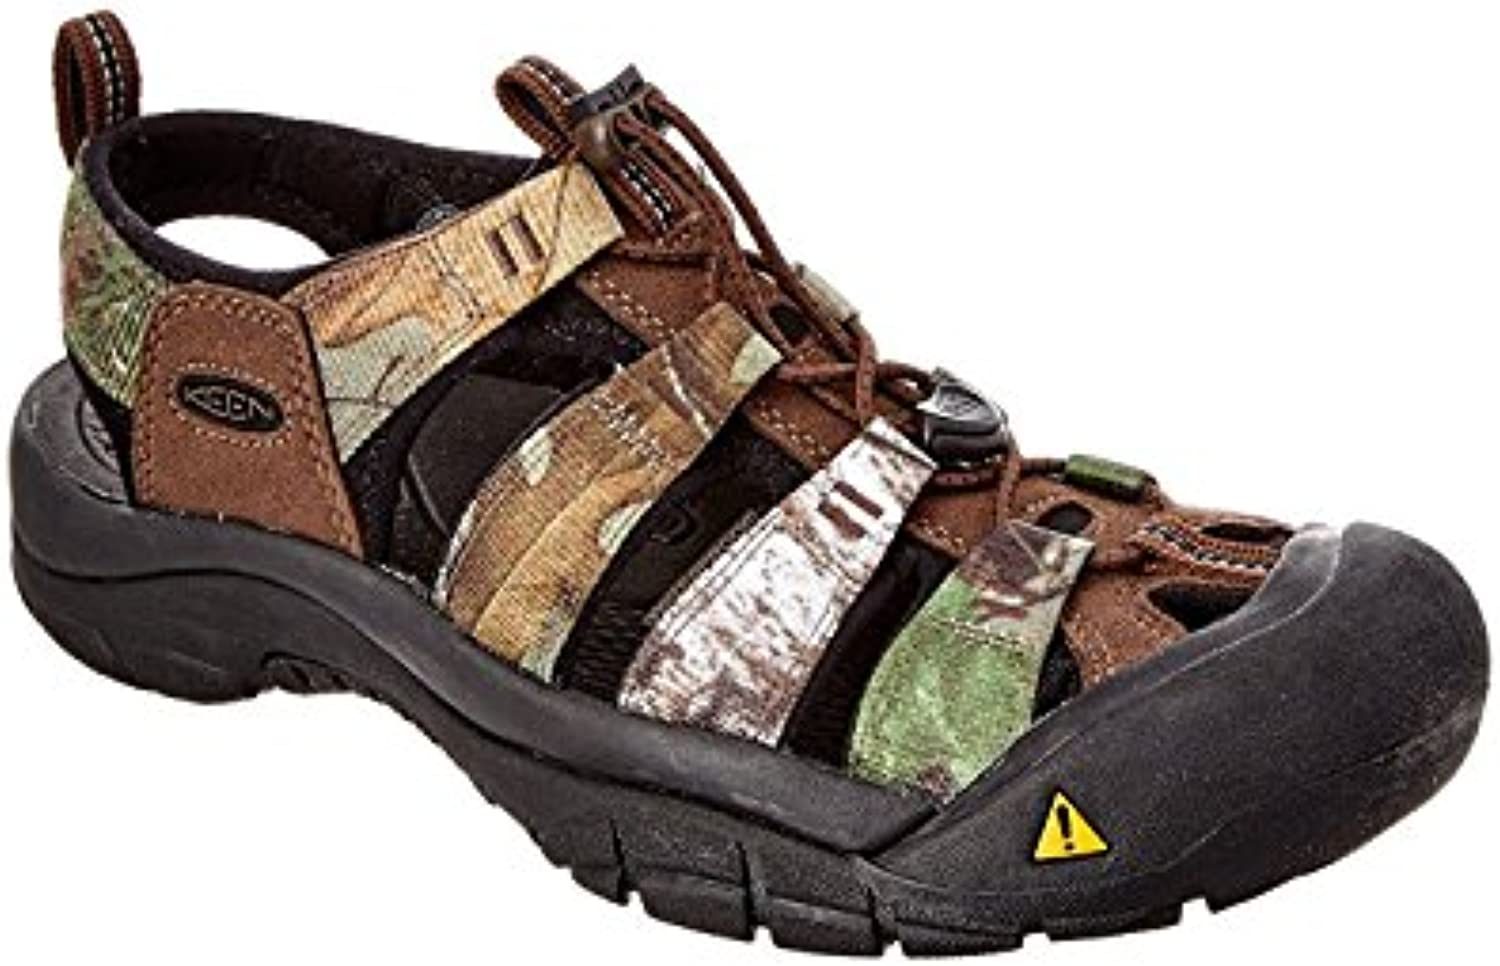 KEEN Men's Newport H2 Sandal, Realtree/xtra Green, 44.5 D(M) EU/10 D(M) UK